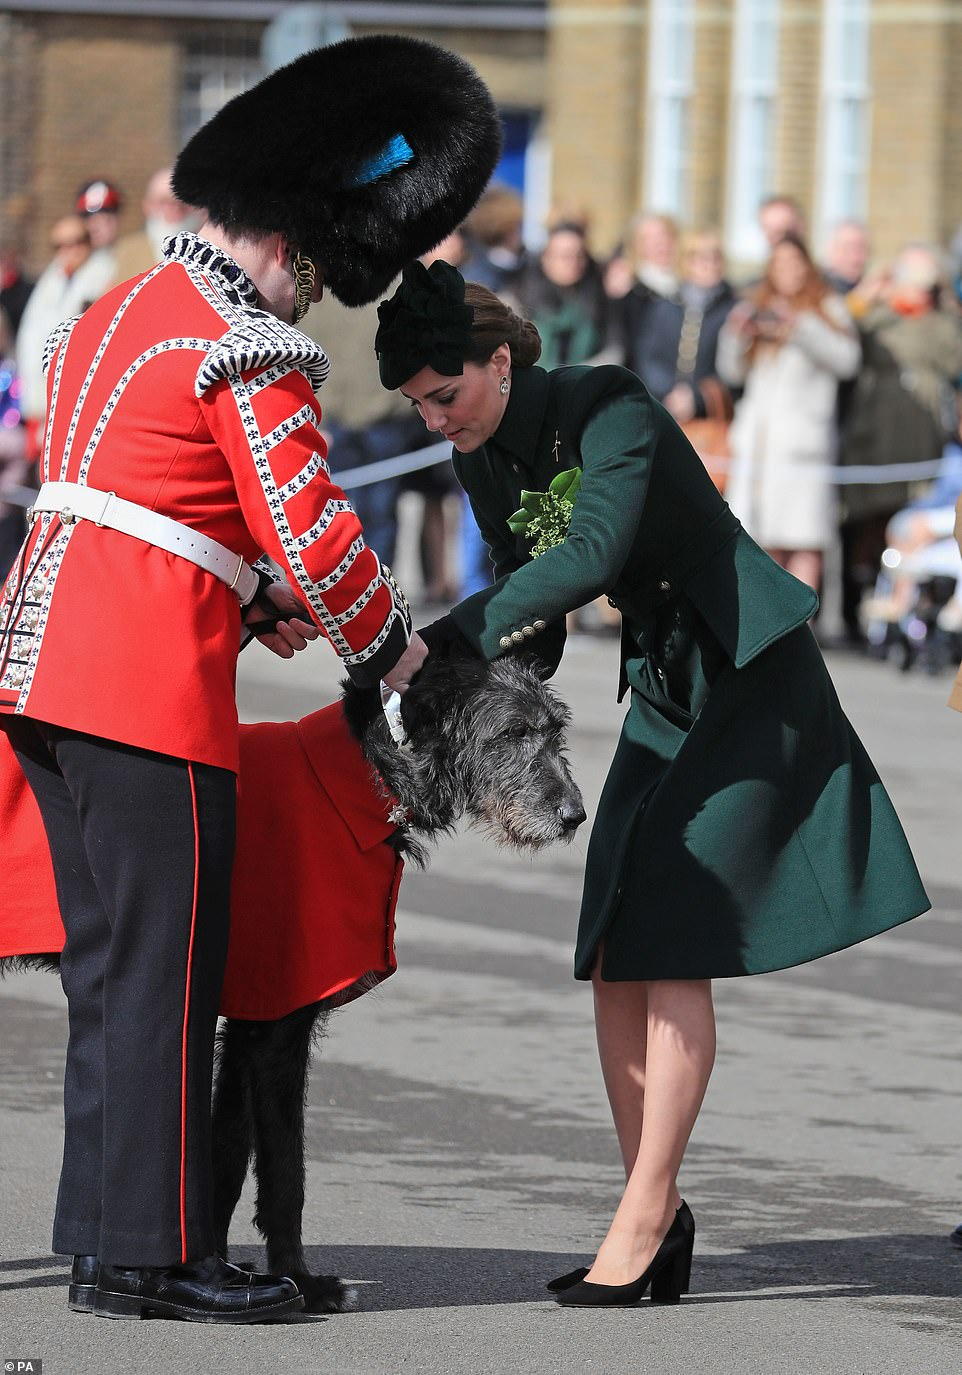 Kate pins a traditional sprig of shamrock. to the pooch's coat. Domhnall, which is Gaelic for 'world leader', traditionally leads 350 soldiers as they march on the Parade Square at Cavalry Barracks on Sunday morning